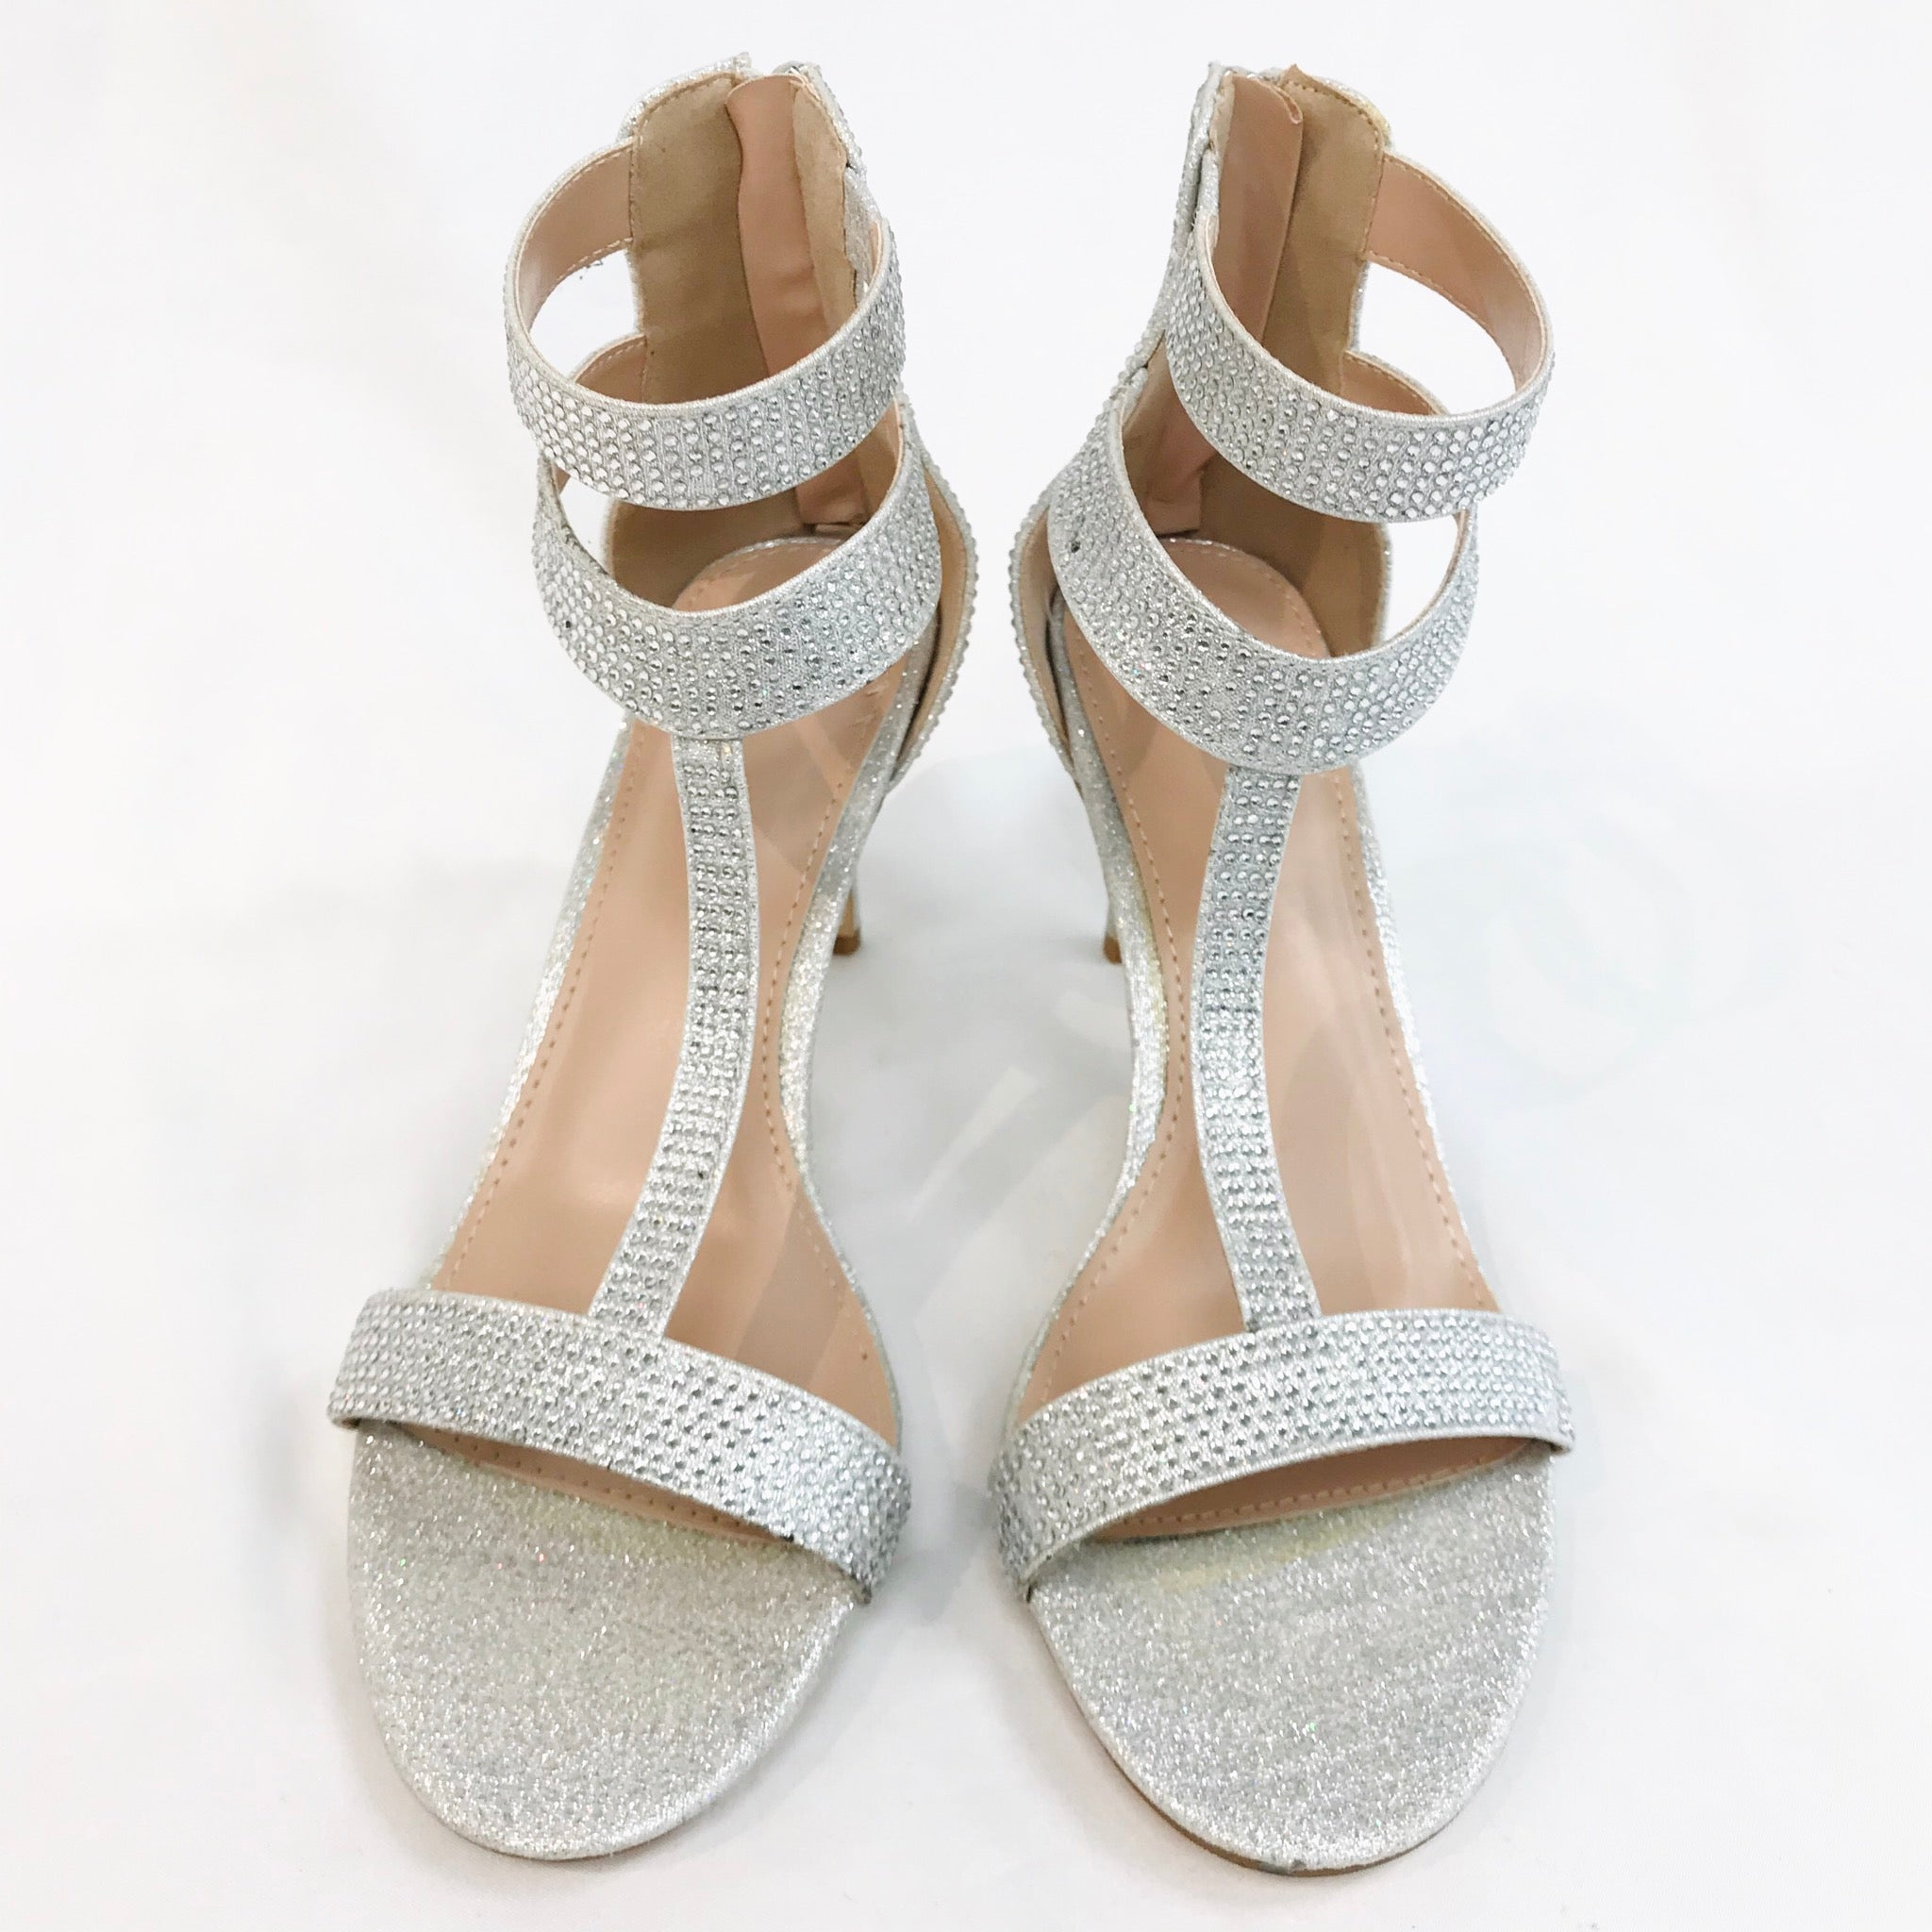 Primary Photo - BRAND: WINDSOR <BR>STYLE: SANDALS LOW<BR>COLOR: SPARKLES <BR>SIZE: 8 <BR>SKU: 262-26275-55473<BR>- AS IS -